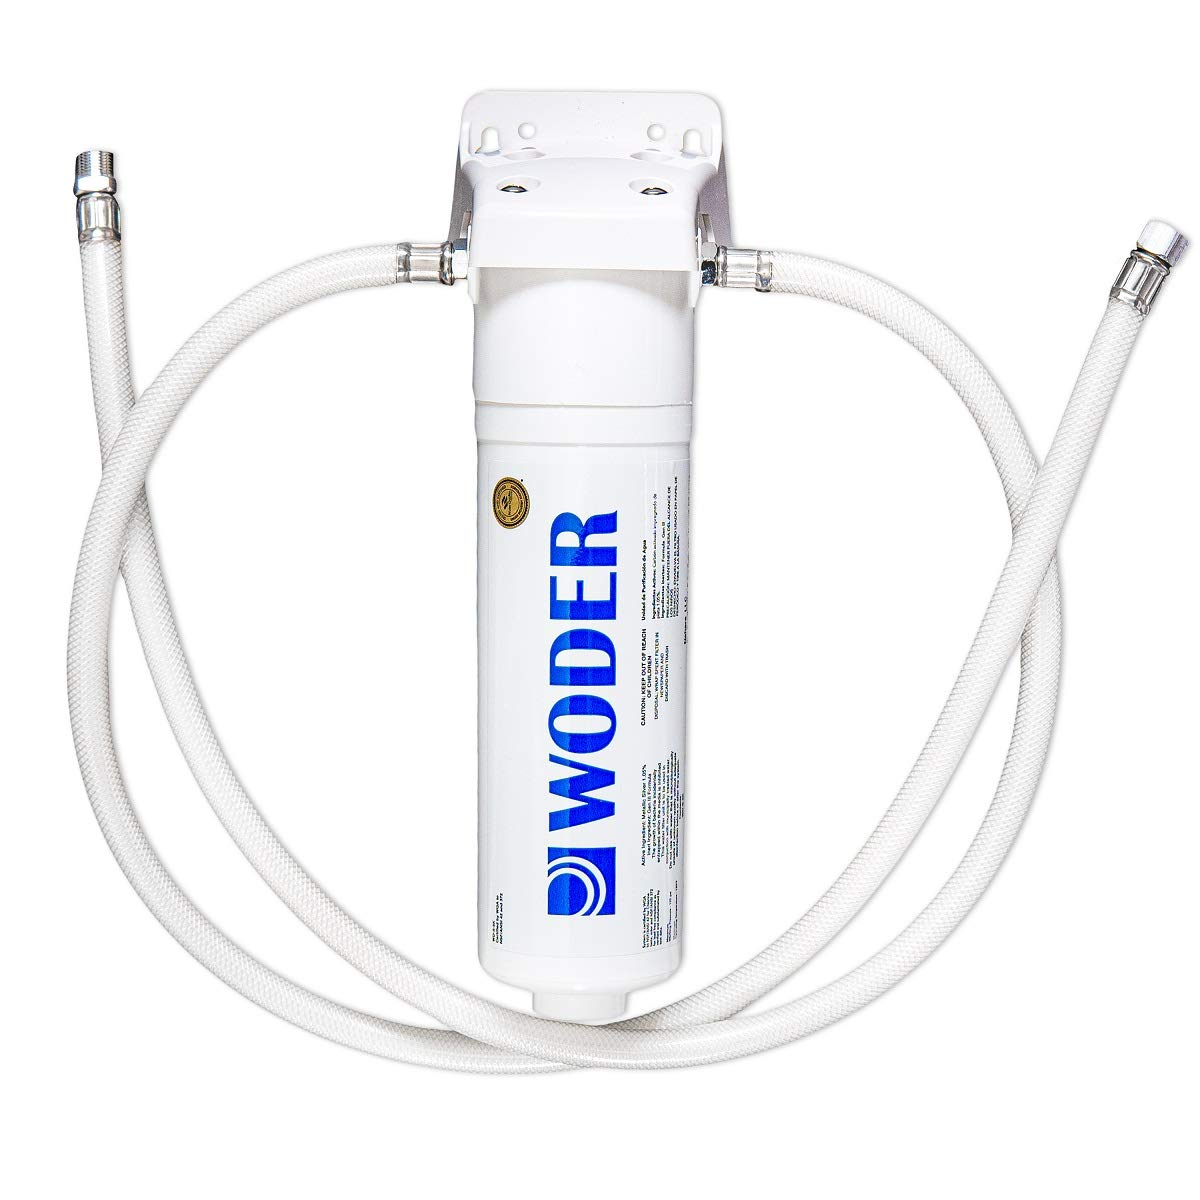 Woder WD-S-5K Under Sink Water Filter with Direct Connect Fittings – WQA Certified USA Made – Ultra High Capacity – Removes Chlorine, Lead, Chromium 6, Heavy Metals and Contaminants